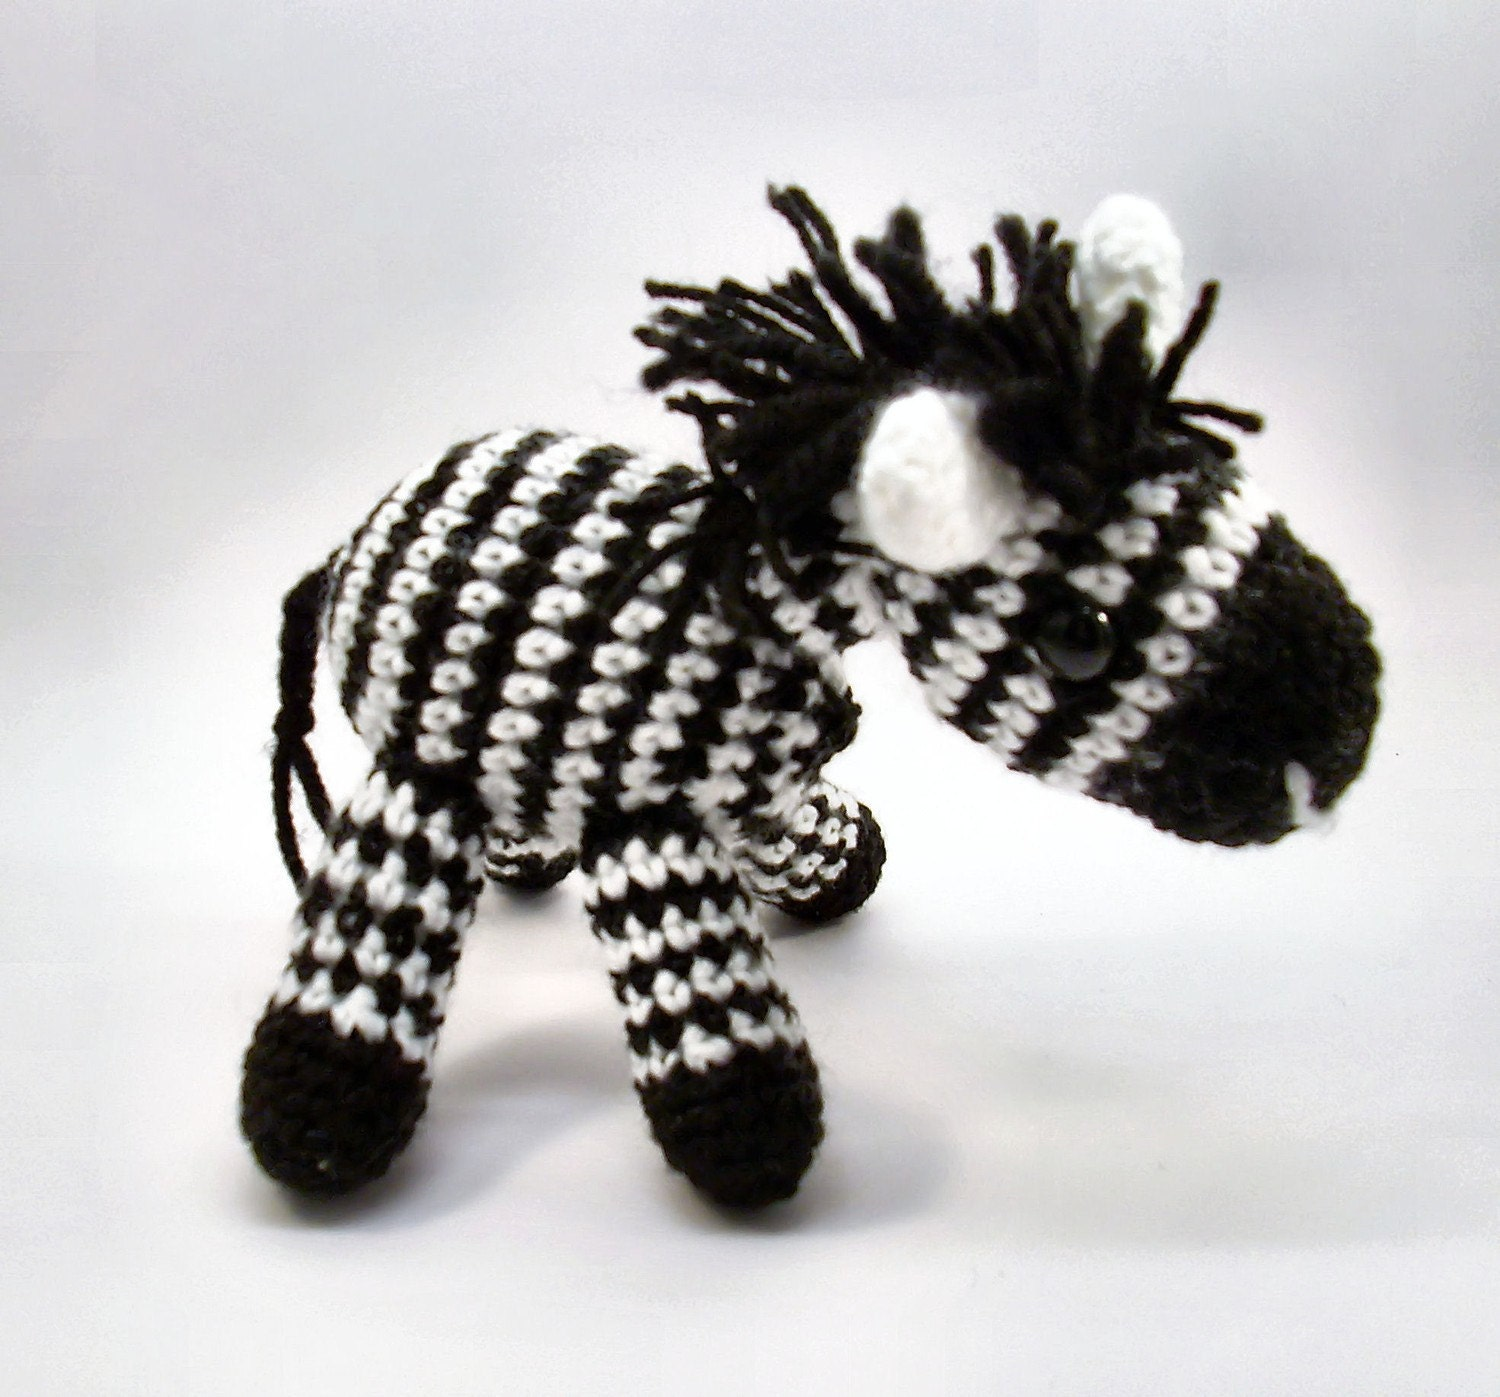 Crochet Zebra : Zuzu the Zebra Hand crocheted striped amigurumi zebra by jarg0n ...